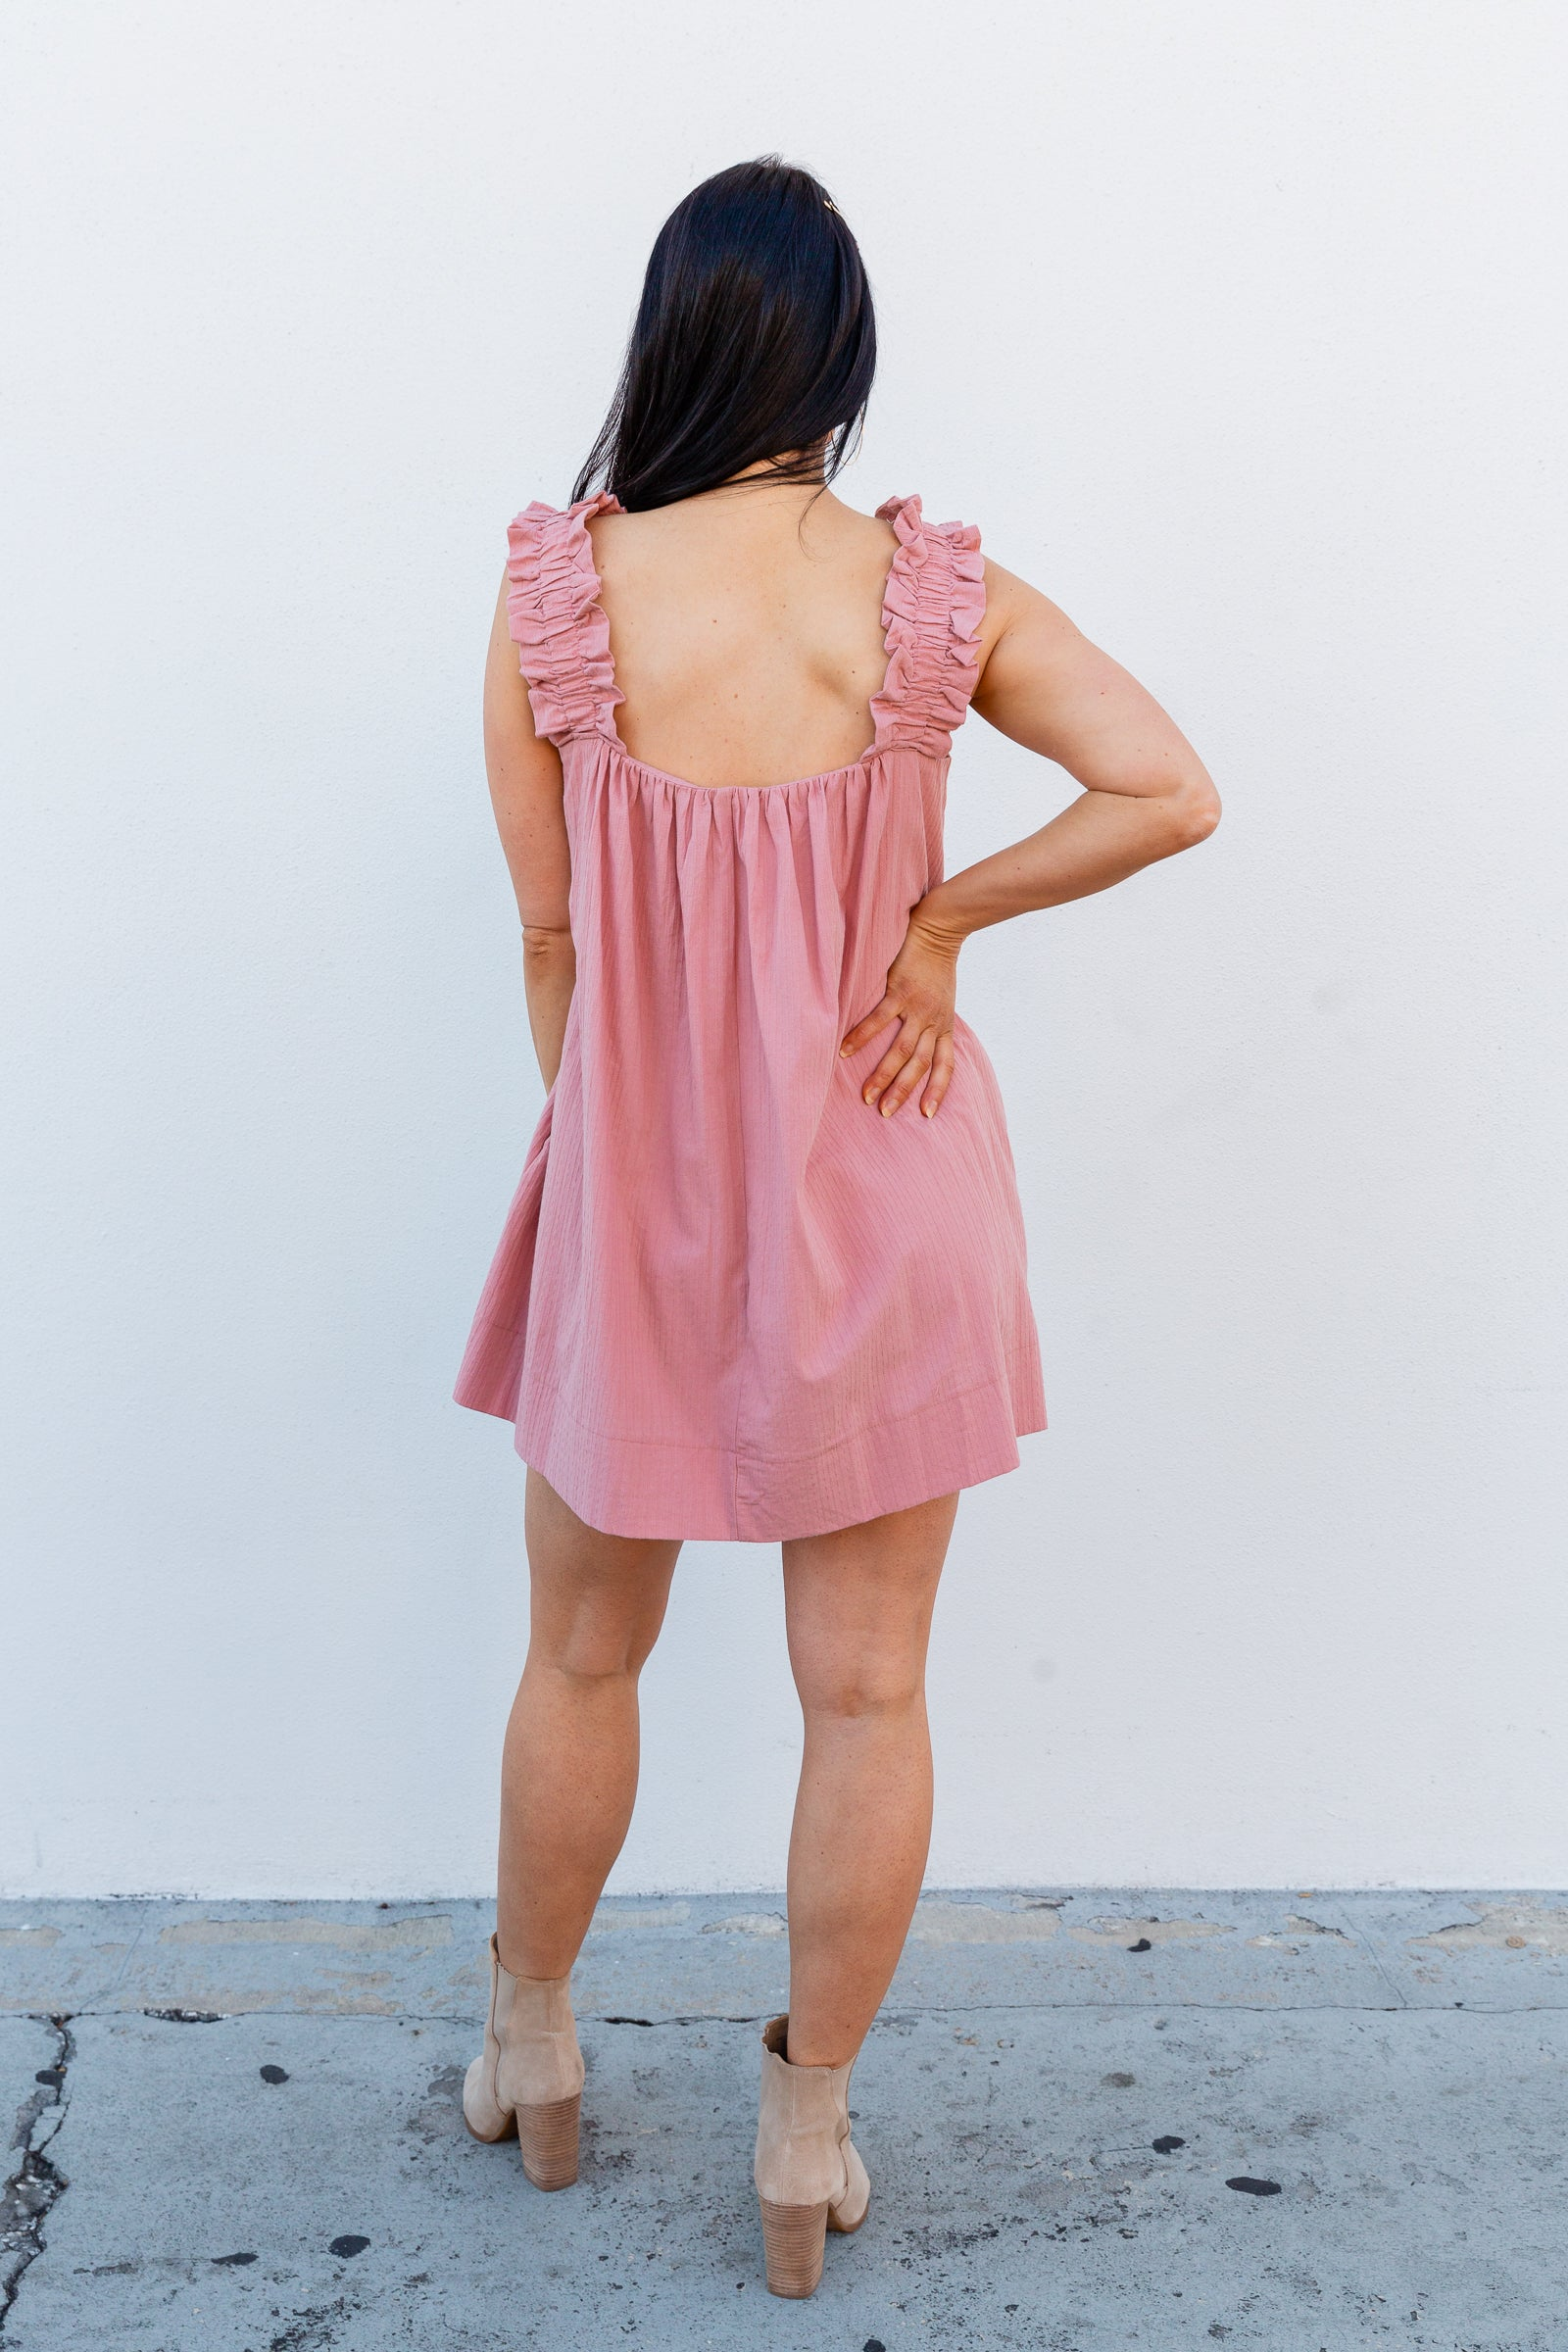 This darling faux-dress style romper has medium ruffle straps that attach to a straight neckline on a relaxed bodice before going into a babydoll skirt with pockets at the side.